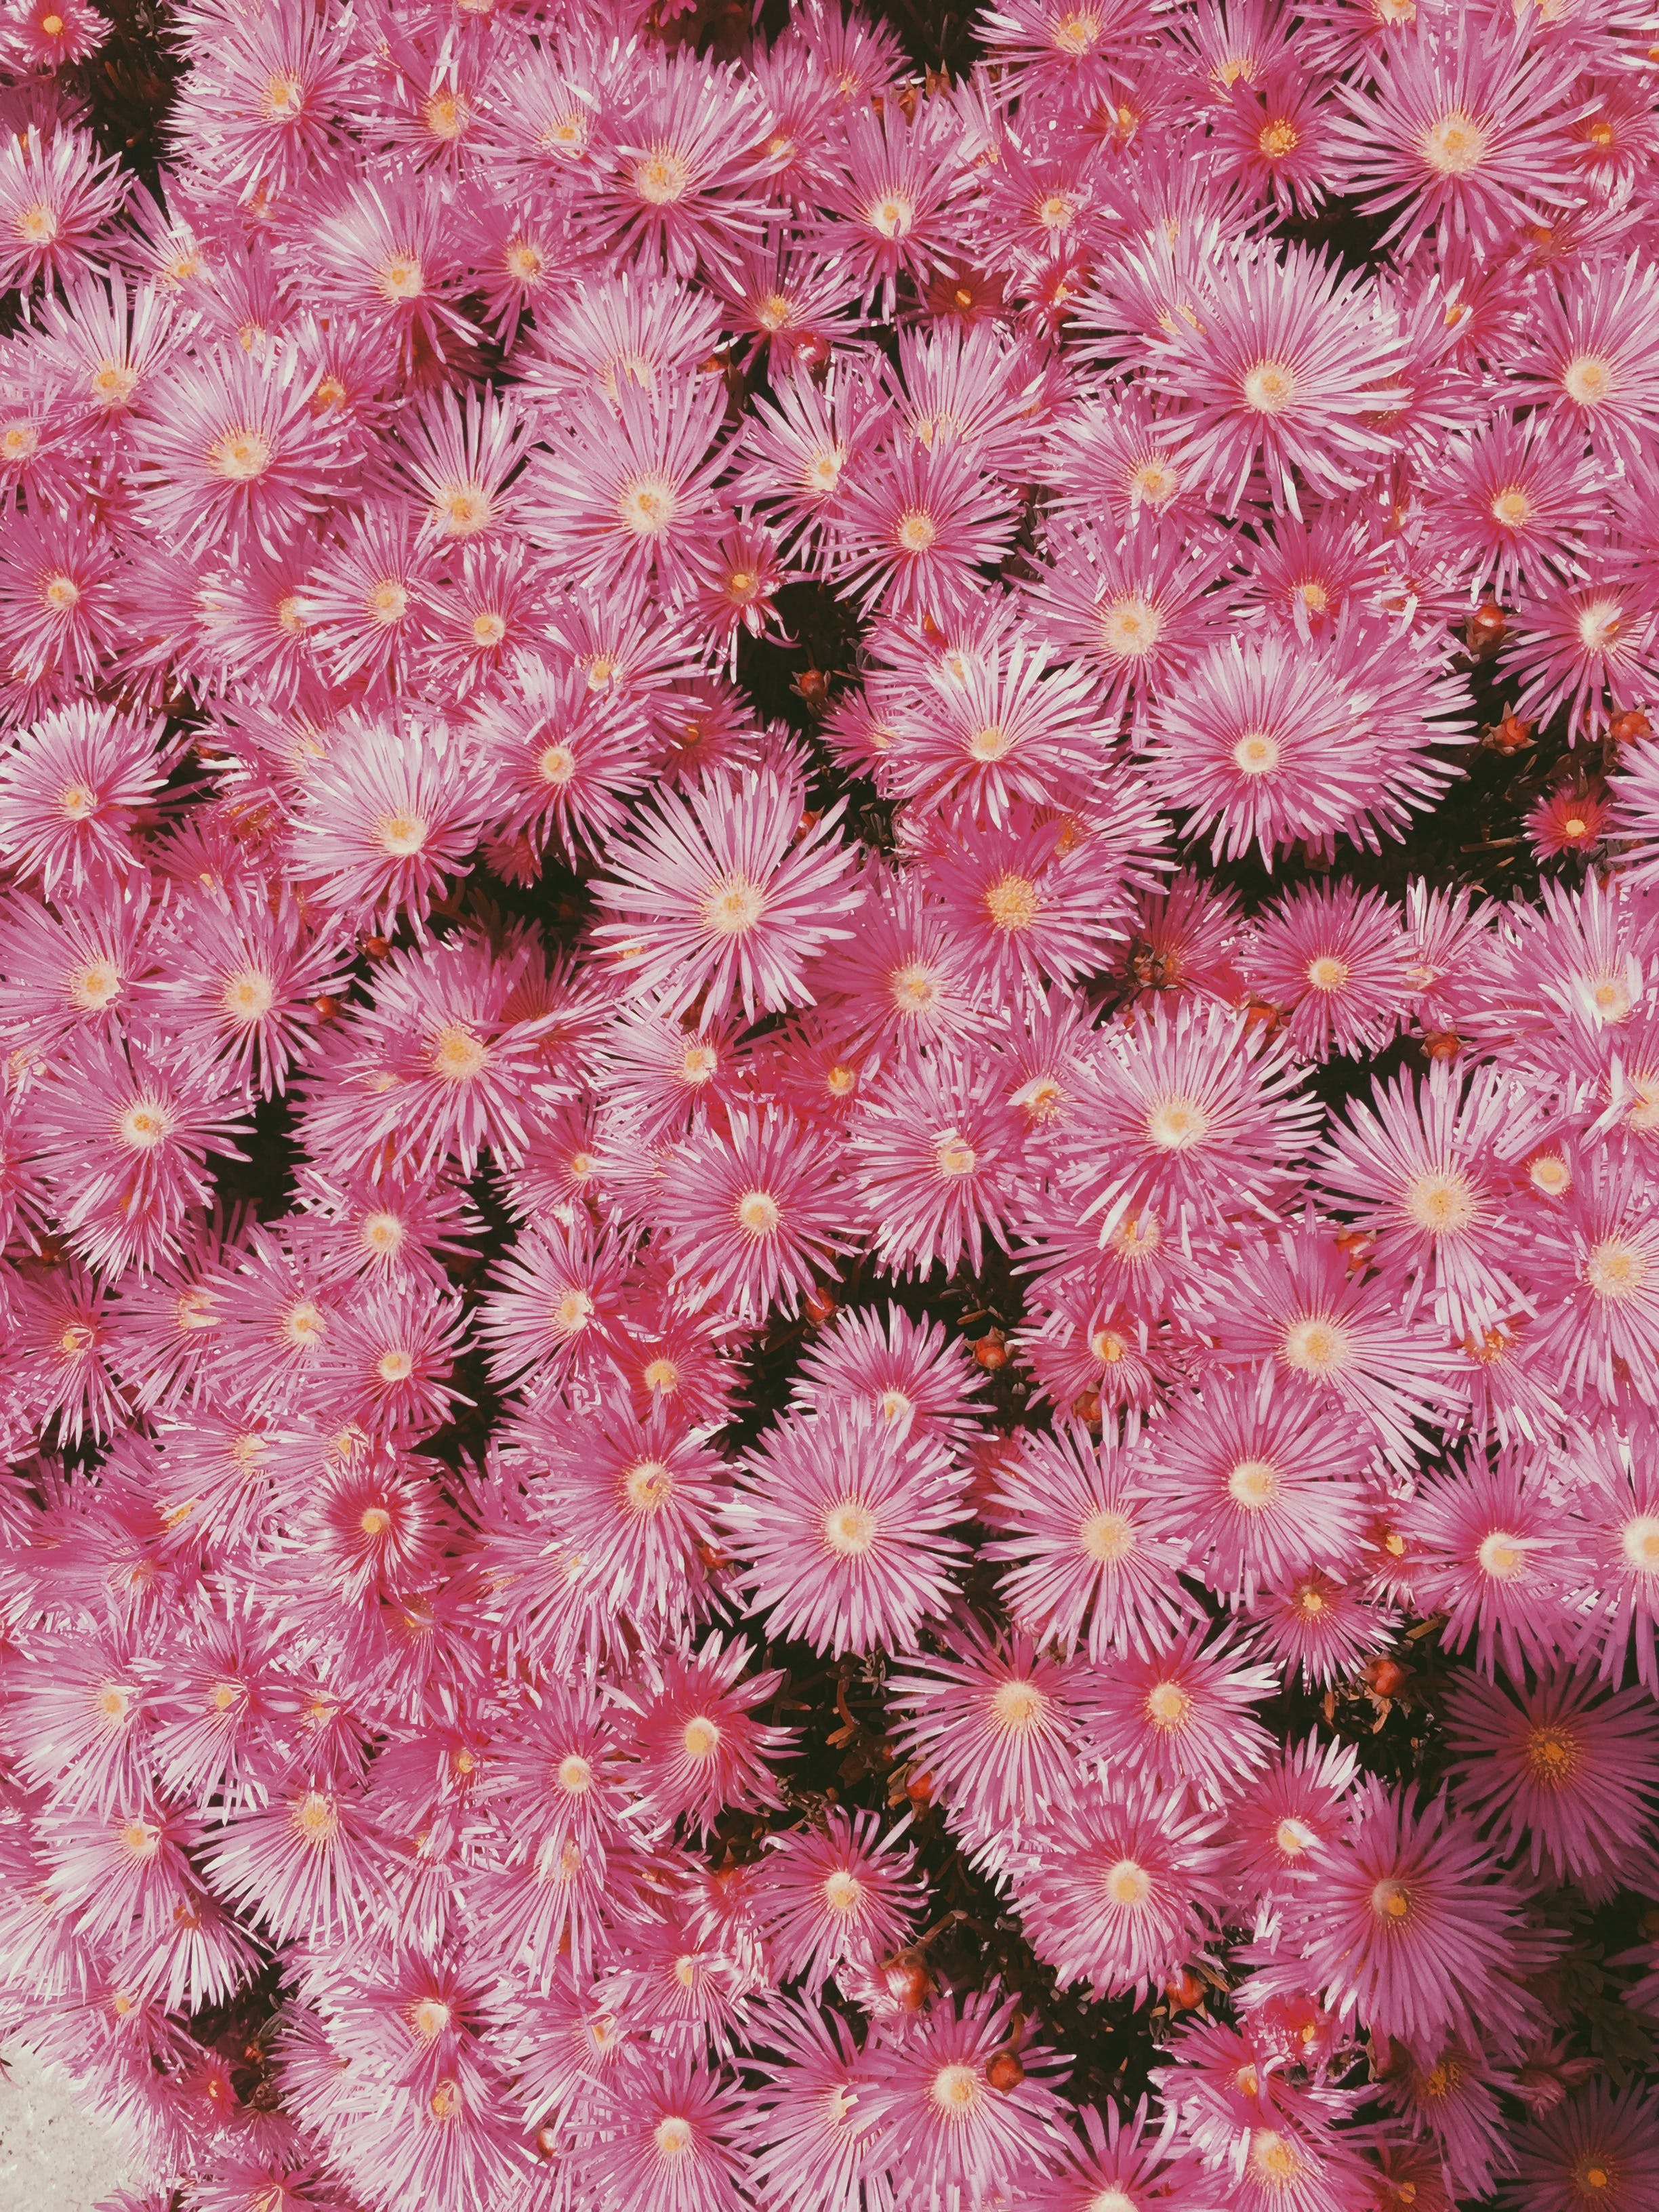 Free stock photo of daisies, flowers, pink, pink flowers